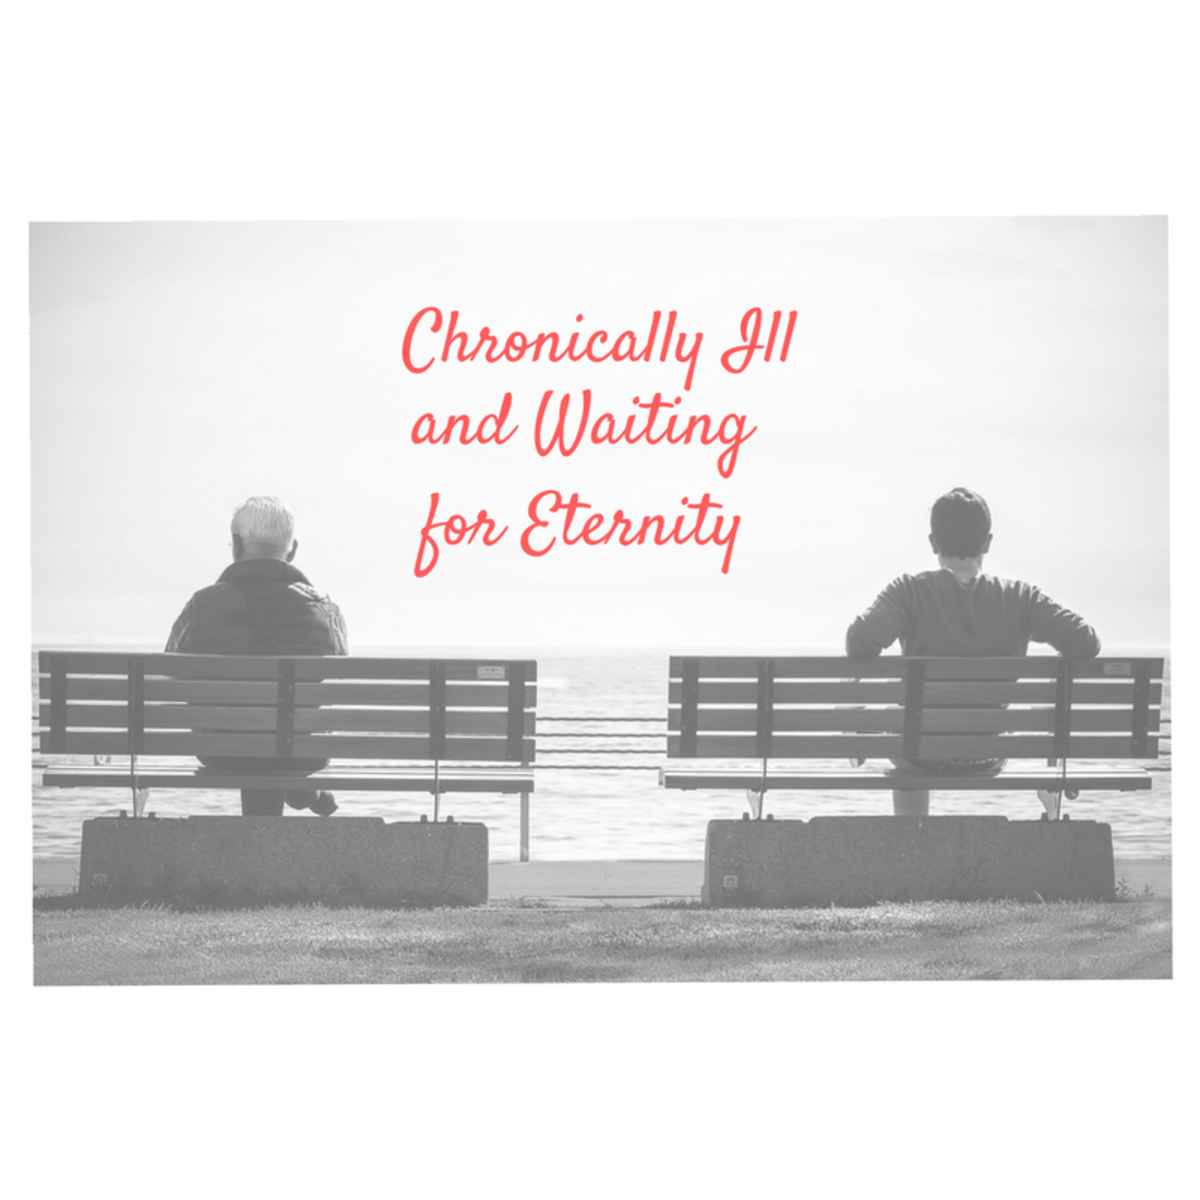 chronically-ill-and-waiting-for-eternity